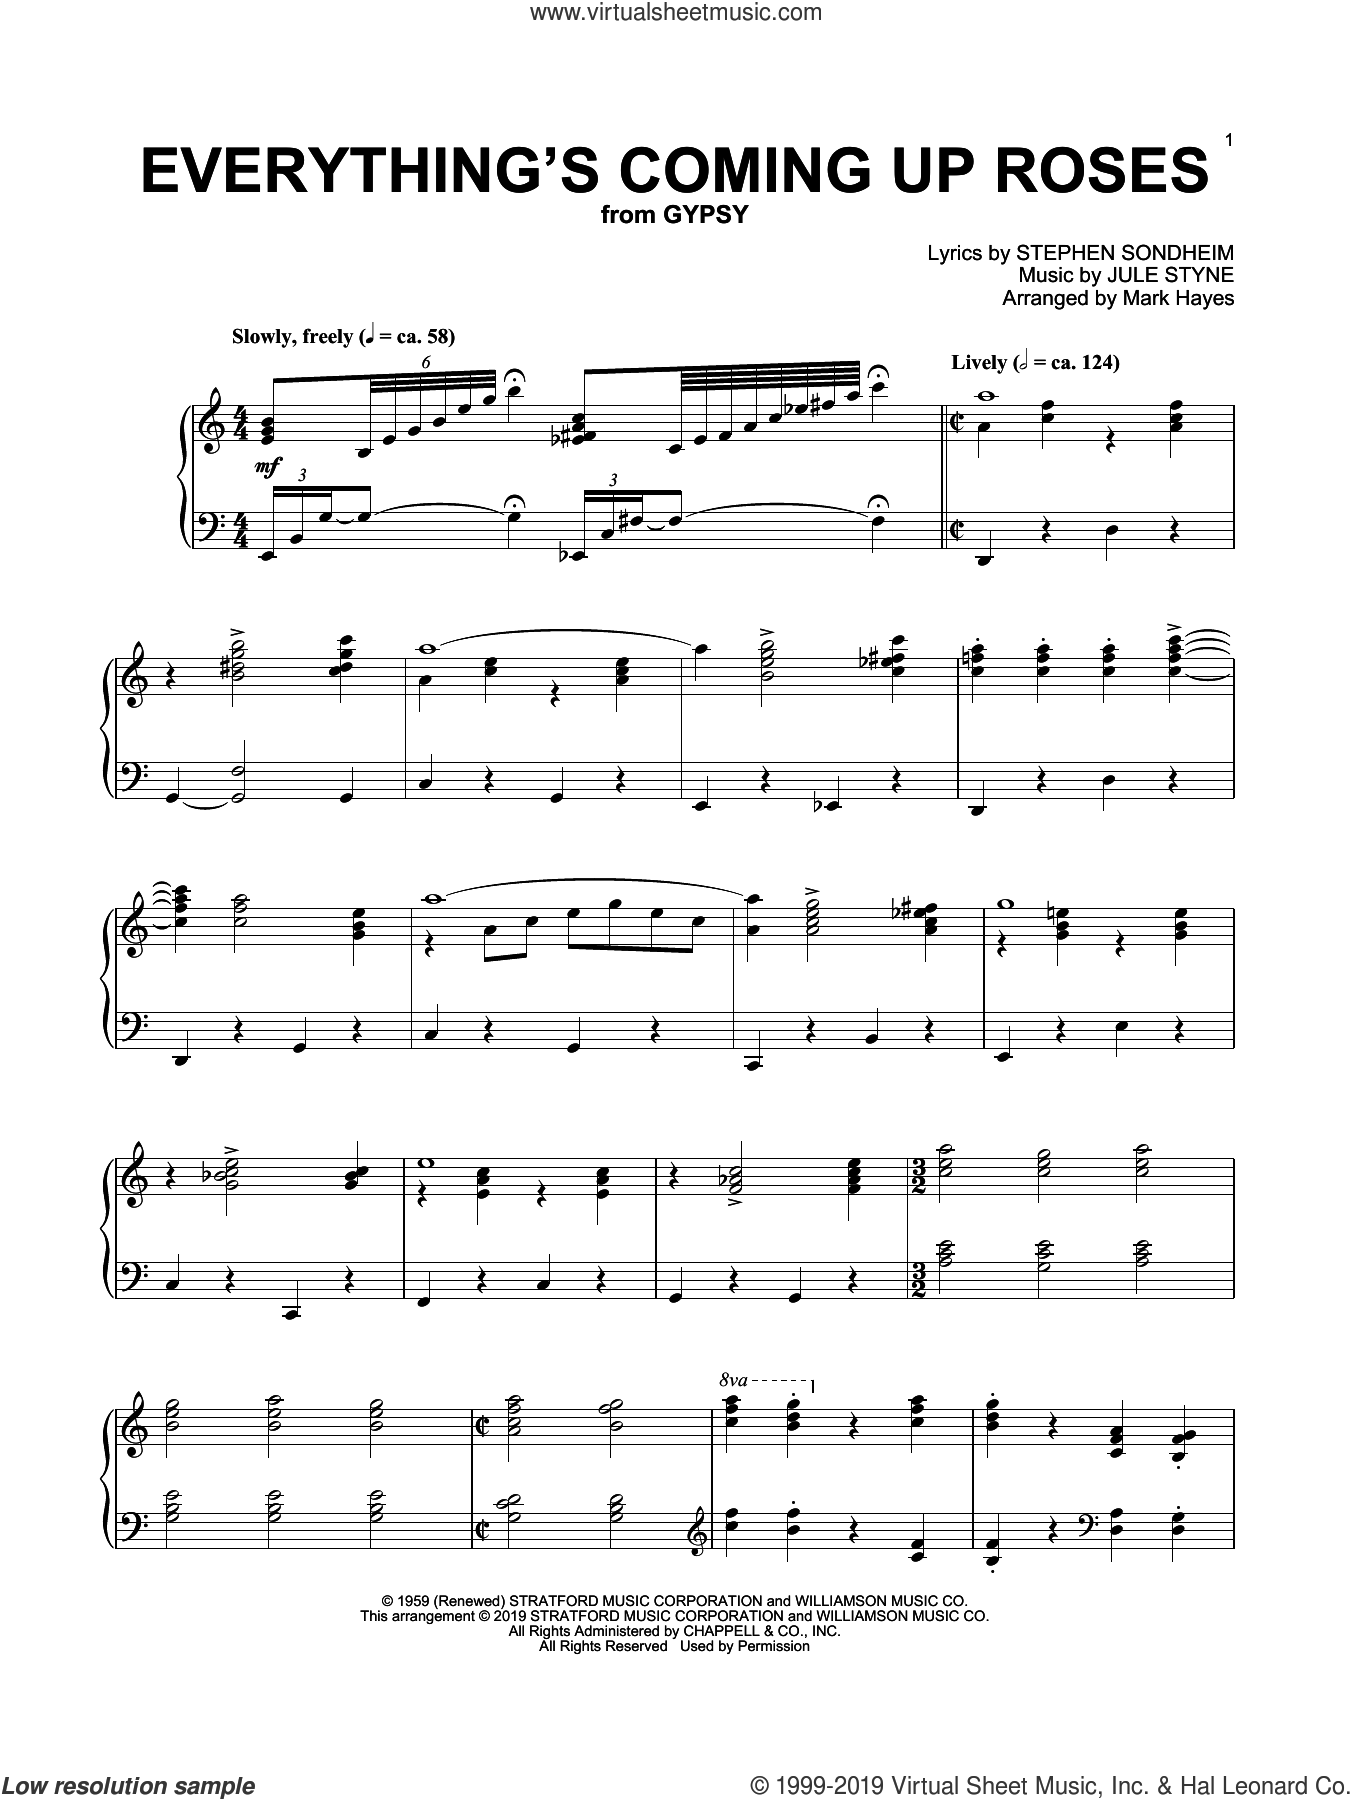 Everything's Coming Up Roses (from Gypsy) (arr. Mark Hayes) sheet music for piano solo by Stephen Sondheim, Mark Hayes and Jule Styne, intermediate skill level